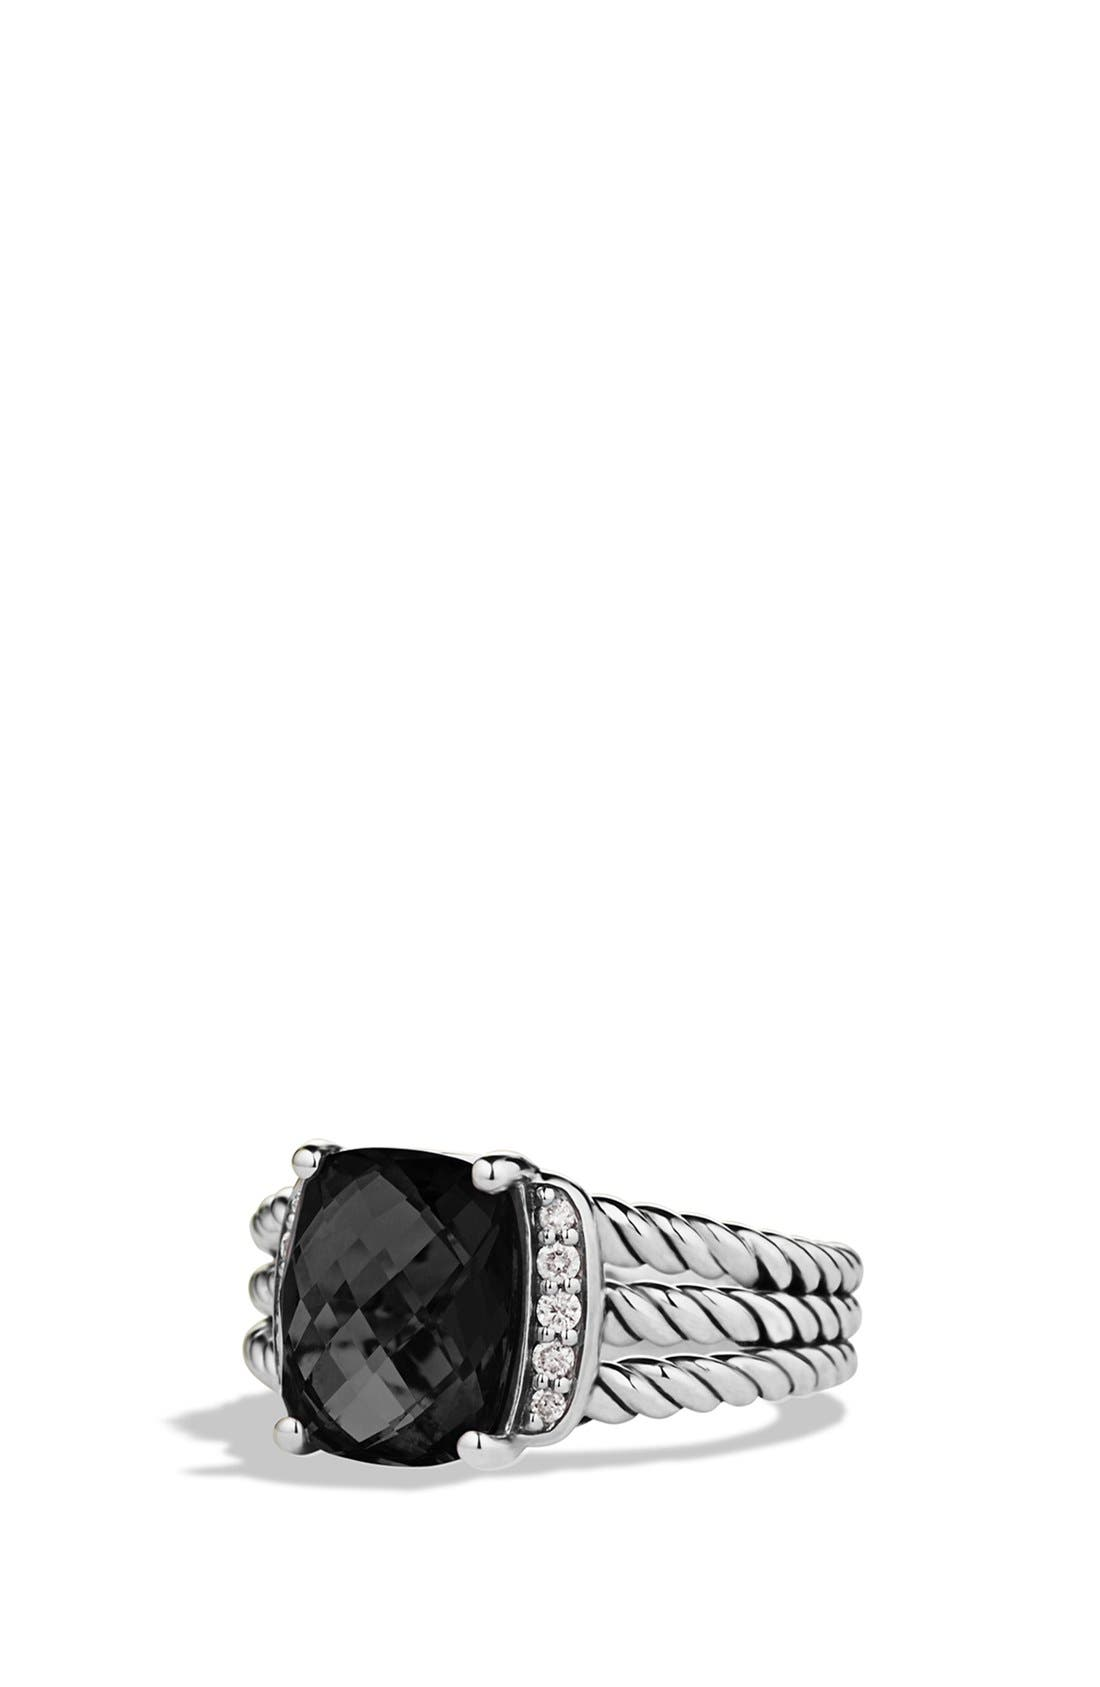 'Wheaton' Petite Ring with Semiprecious Stone & Diamonds,                             Main thumbnail 1, color,                             BLACK ONYX